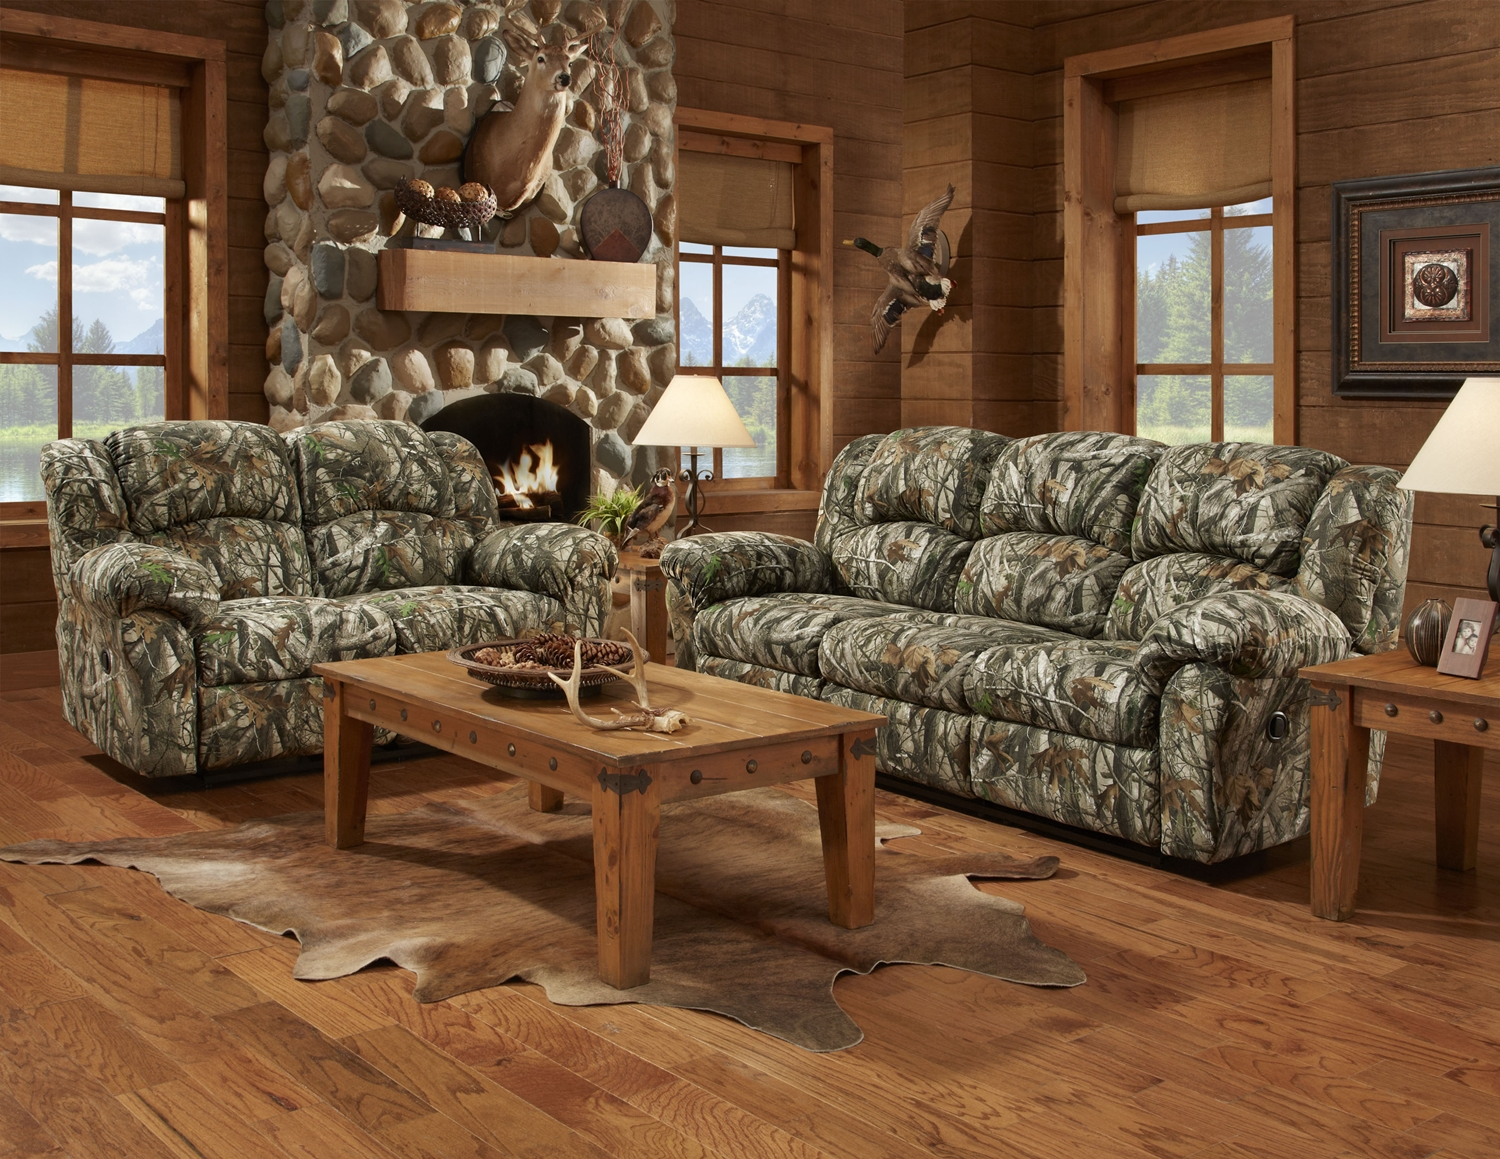 Living Room Loveseats Mossy Oak Camouflage Reclining Motion Sofa Loveseat Camo Hunting